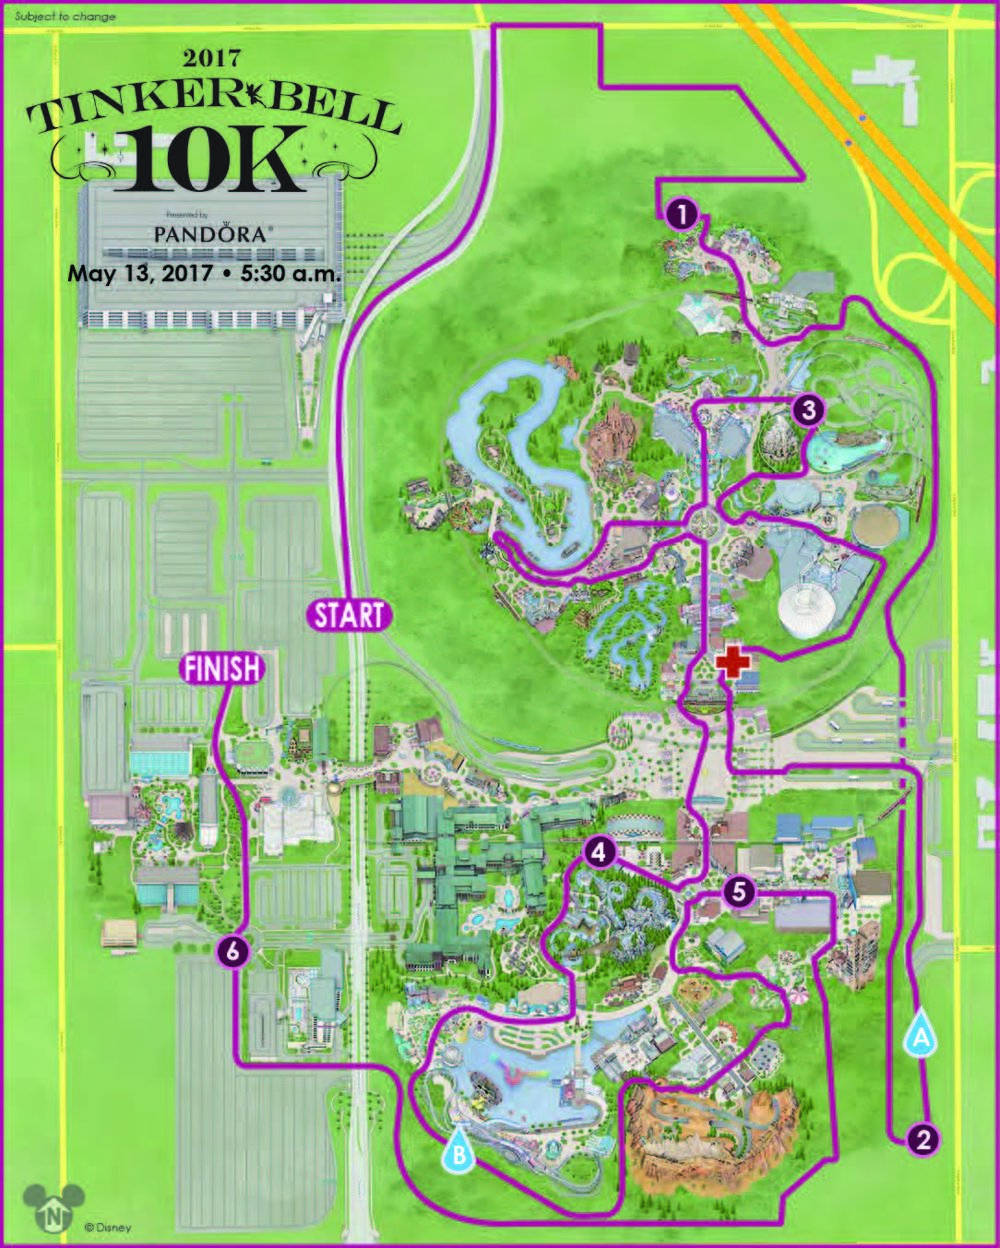 Tink-10K-Course-2017